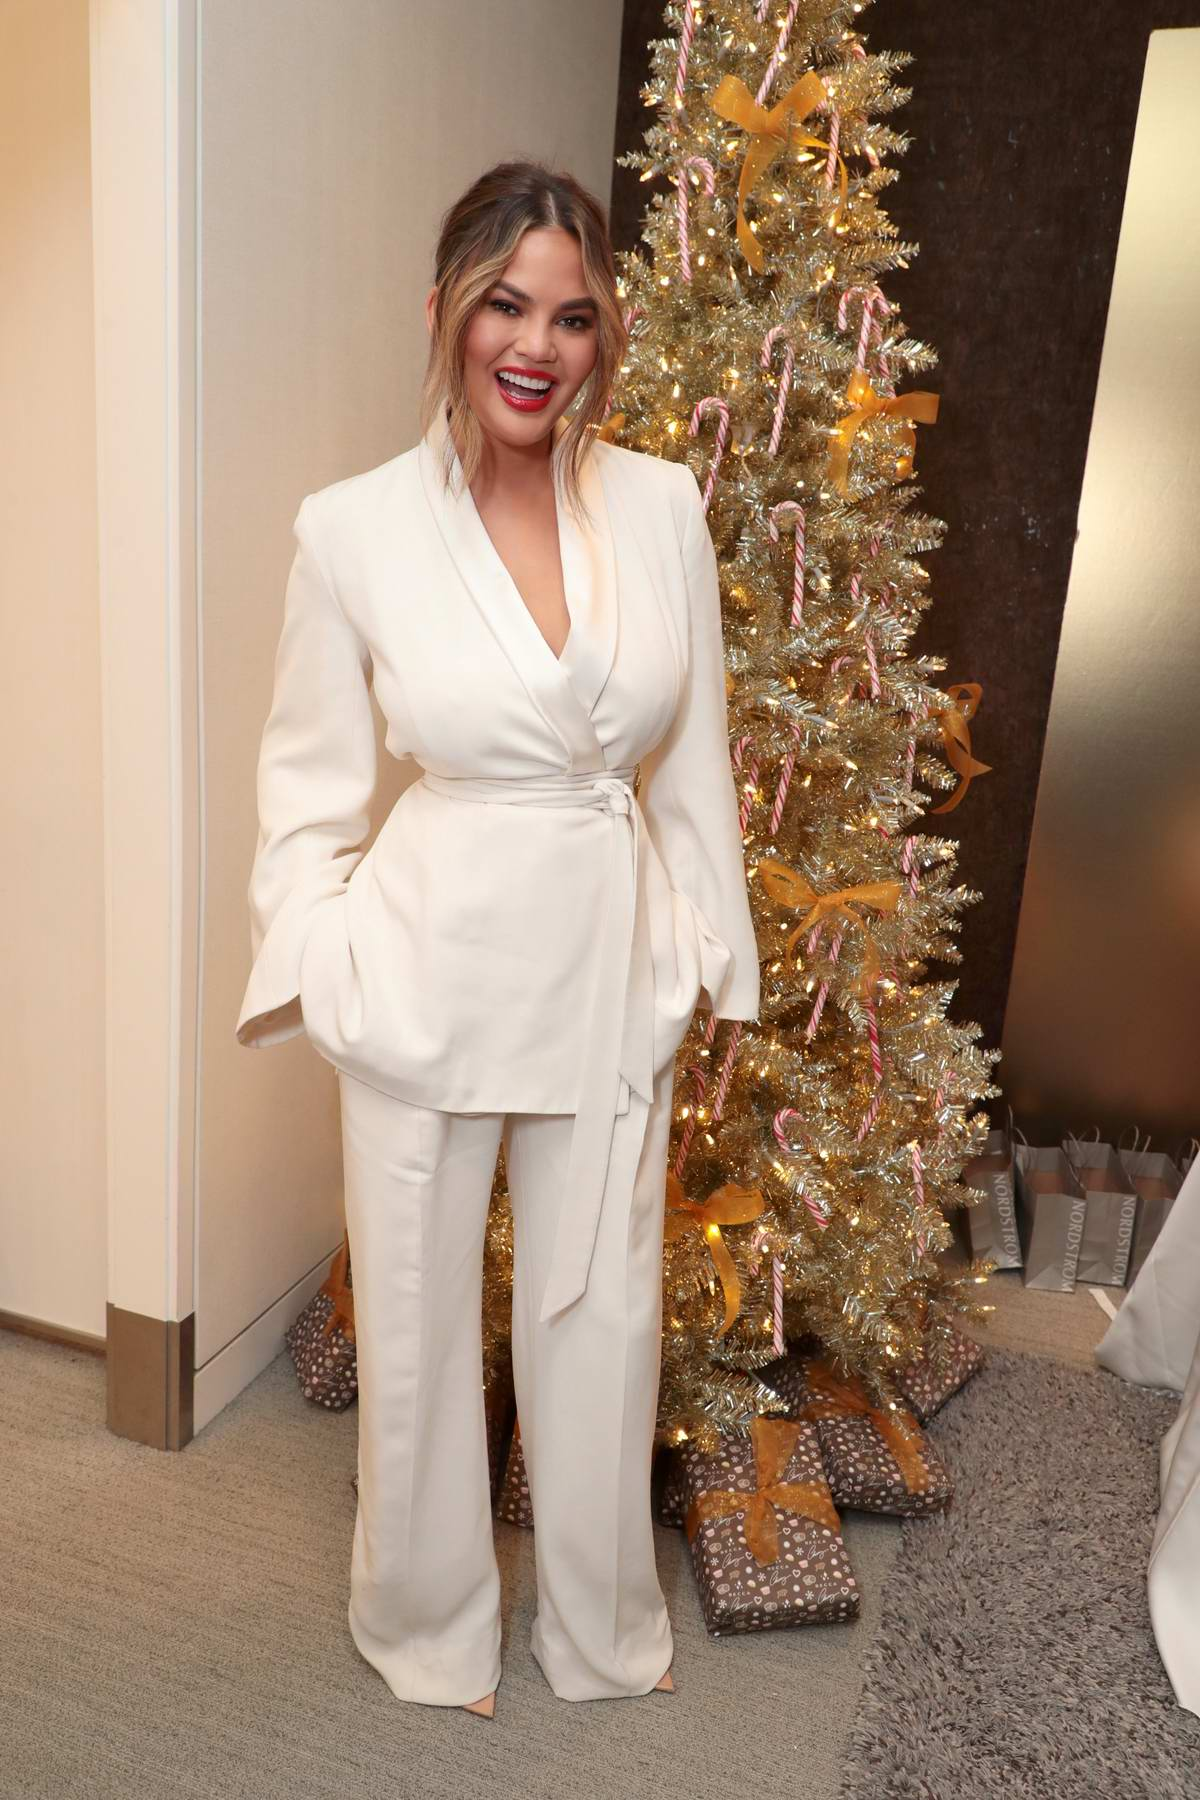 Chrissy Teigen attends launch of her BECCA X Chrissy Cravings Collection in Los Angeles